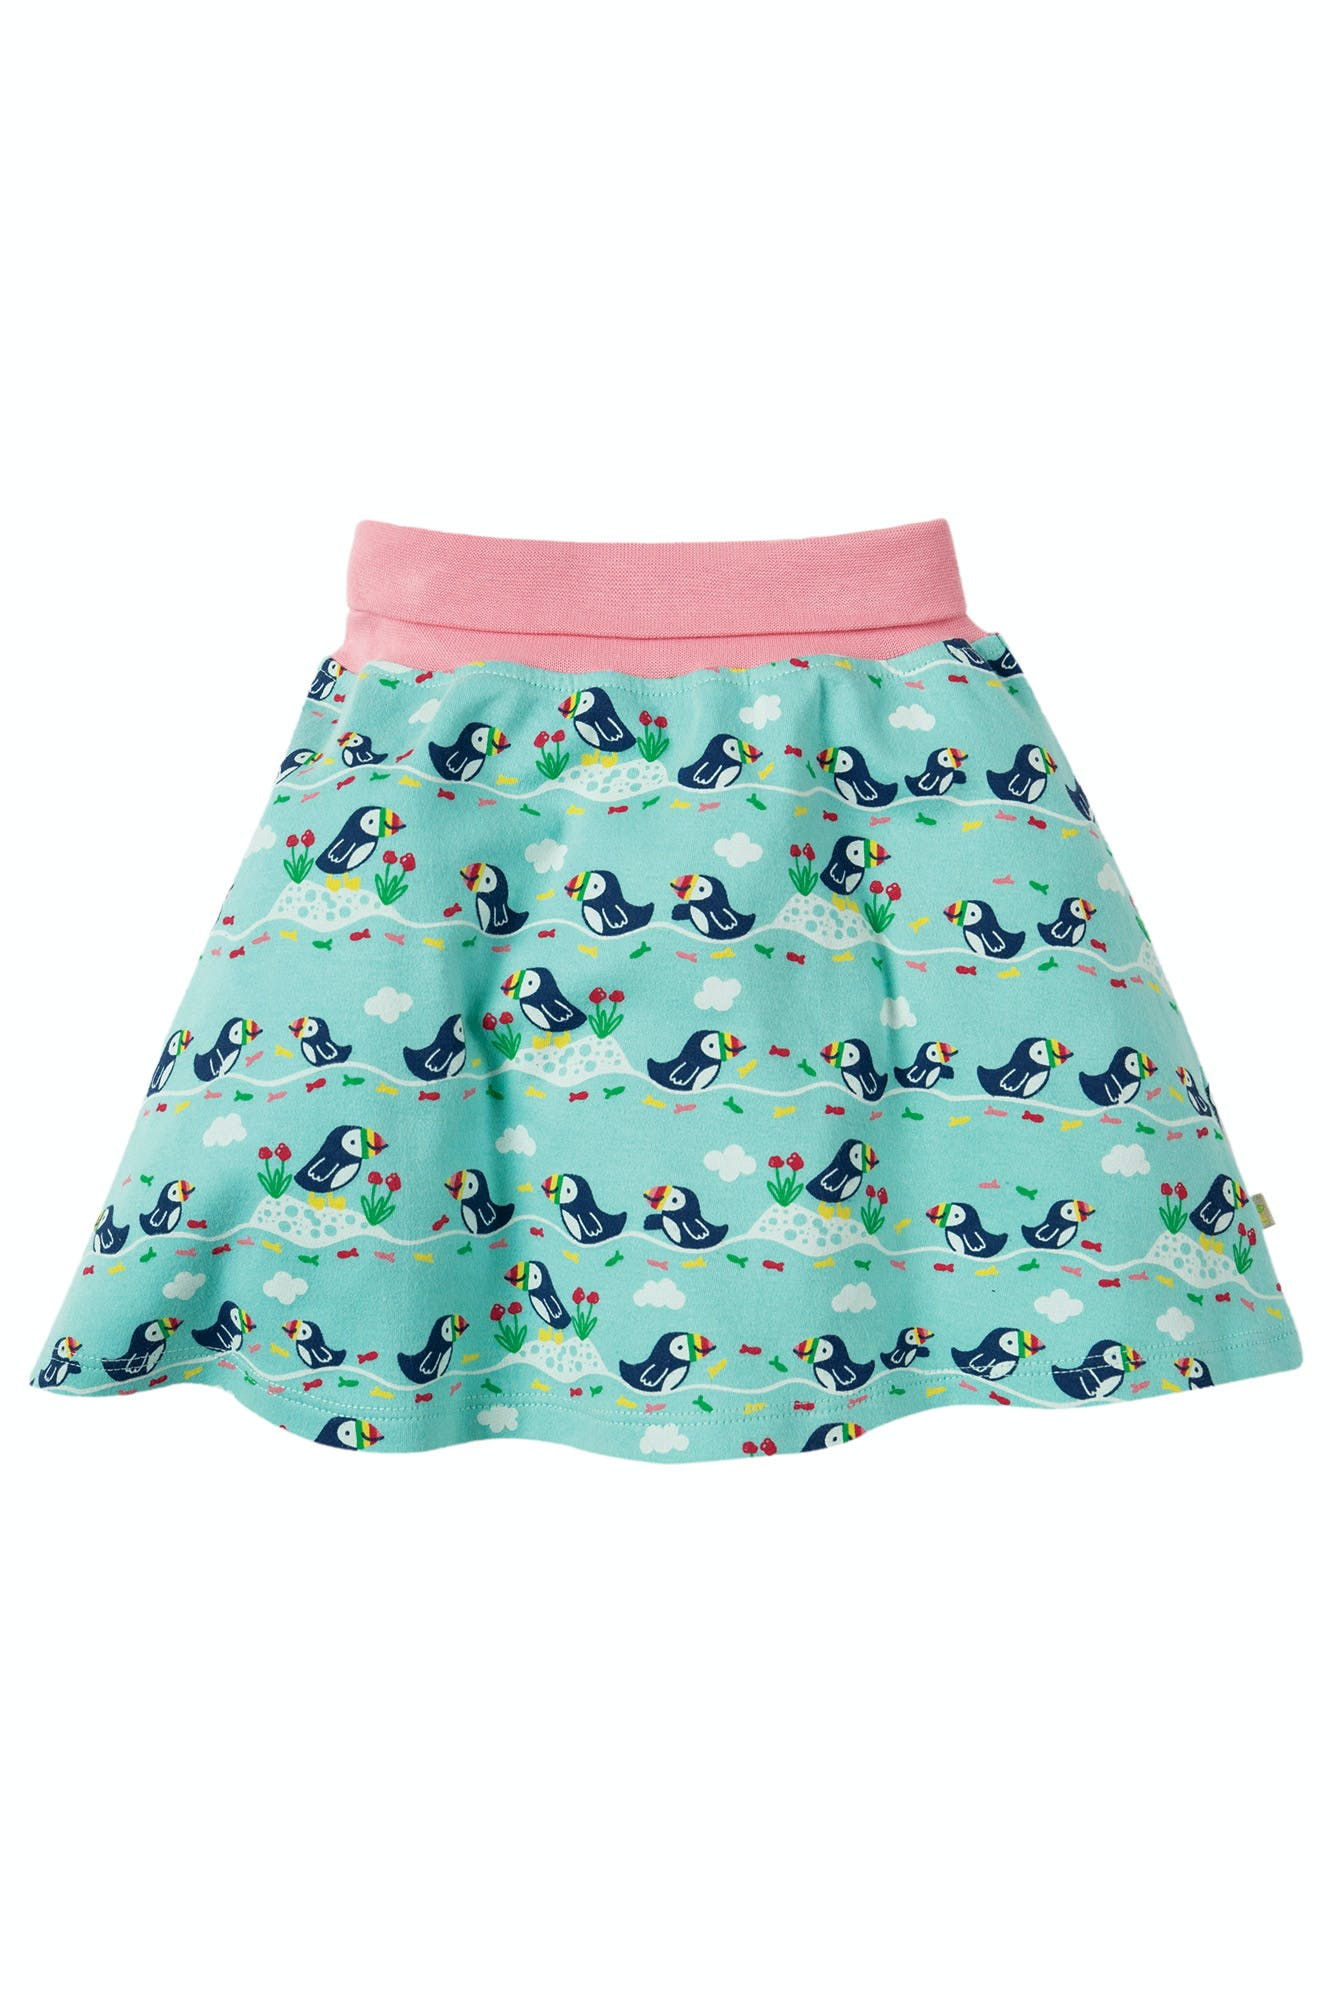 Click to view product details and reviews for Parsnip Printed Skirt.